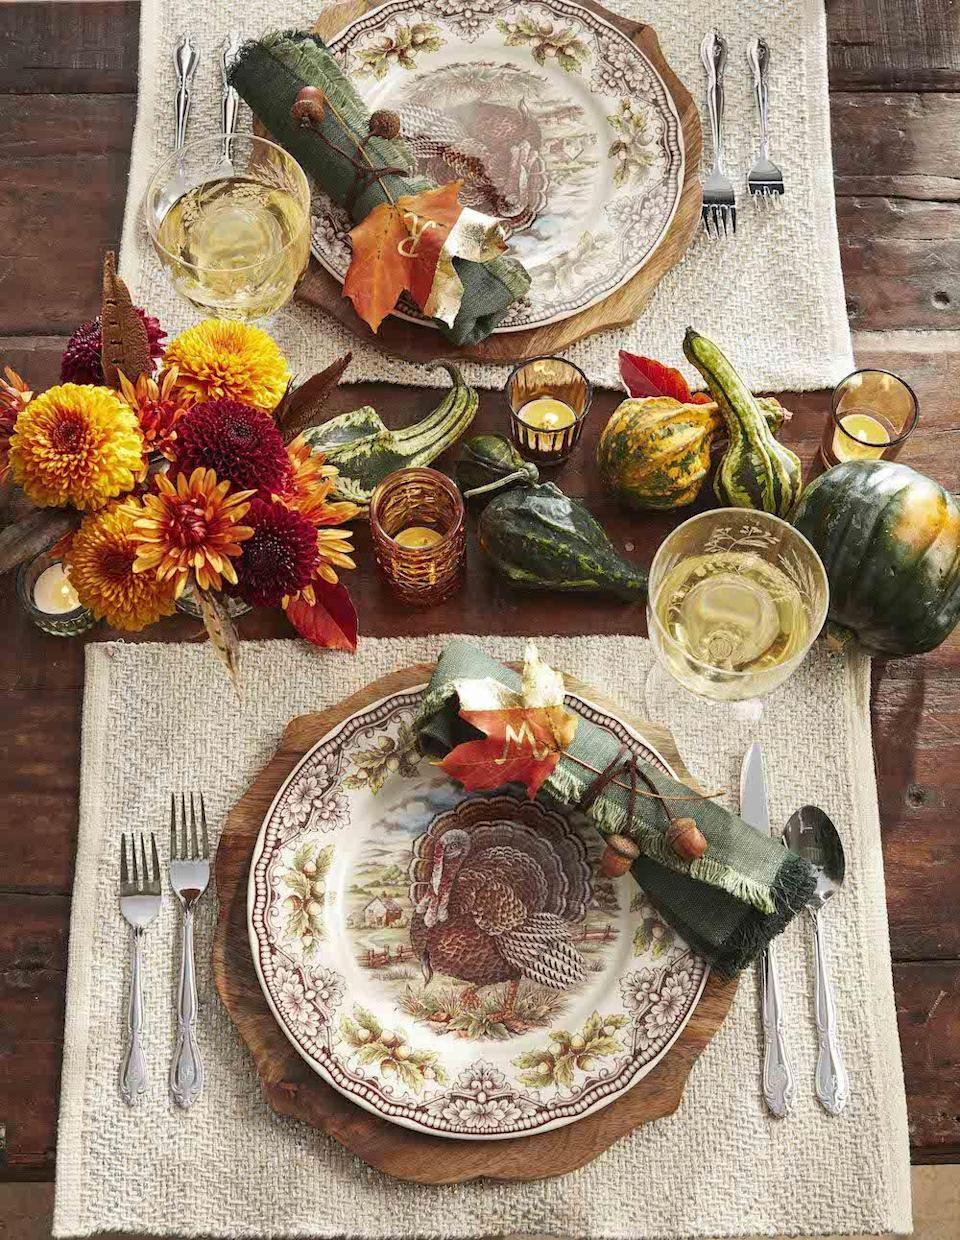 """<p>For a centerpiece that easily transitions between Halloween and Thanksgiving, try a more traditional approach by displaying clusters of gourds, pumpkins, and fall flowers.</p><p><a class=""""link rapid-noclick-resp"""" href=""""https://www.amazon.com/JEDFORE-Simulation-Realistic-Artificial-Decoration/dp/B075JC6T1Z/ref=sr_1_4?tag=syn-yahoo-20&ascsubtag=%5Bartid%7C10050.g.3739%5Bsrc%7Cyahoo-us"""" rel=""""nofollow noopener"""" target=""""_blank"""" data-ylk=""""slk:SHOP MINI GOURDS"""">SHOP MINI GOURDS</a></p>"""